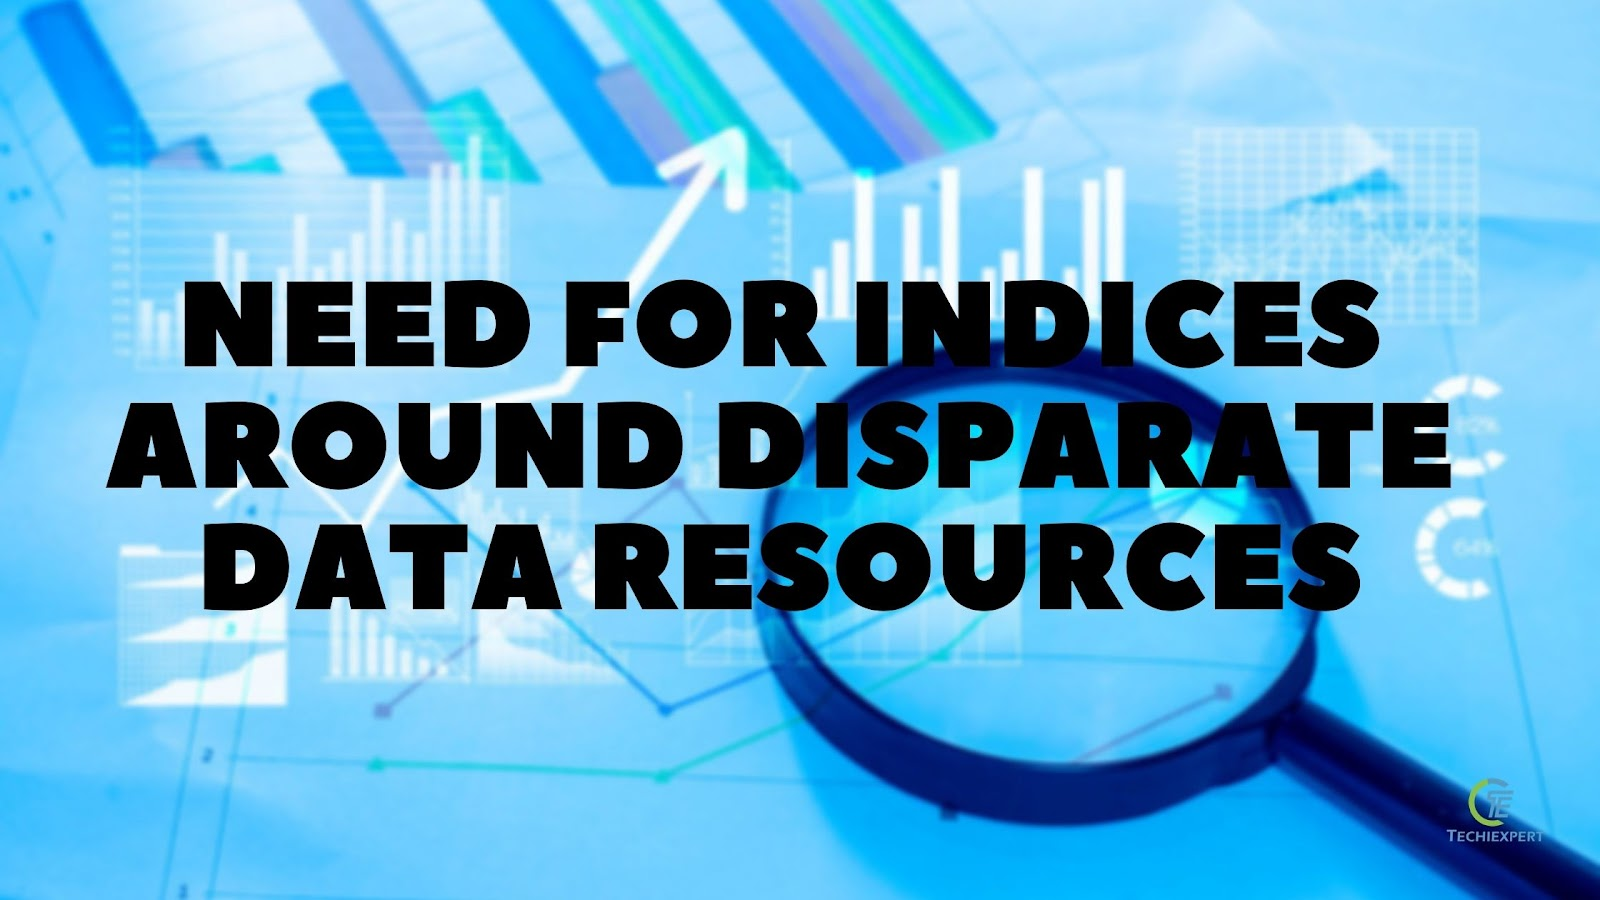 Need For Indices Around Disparate Data Resources